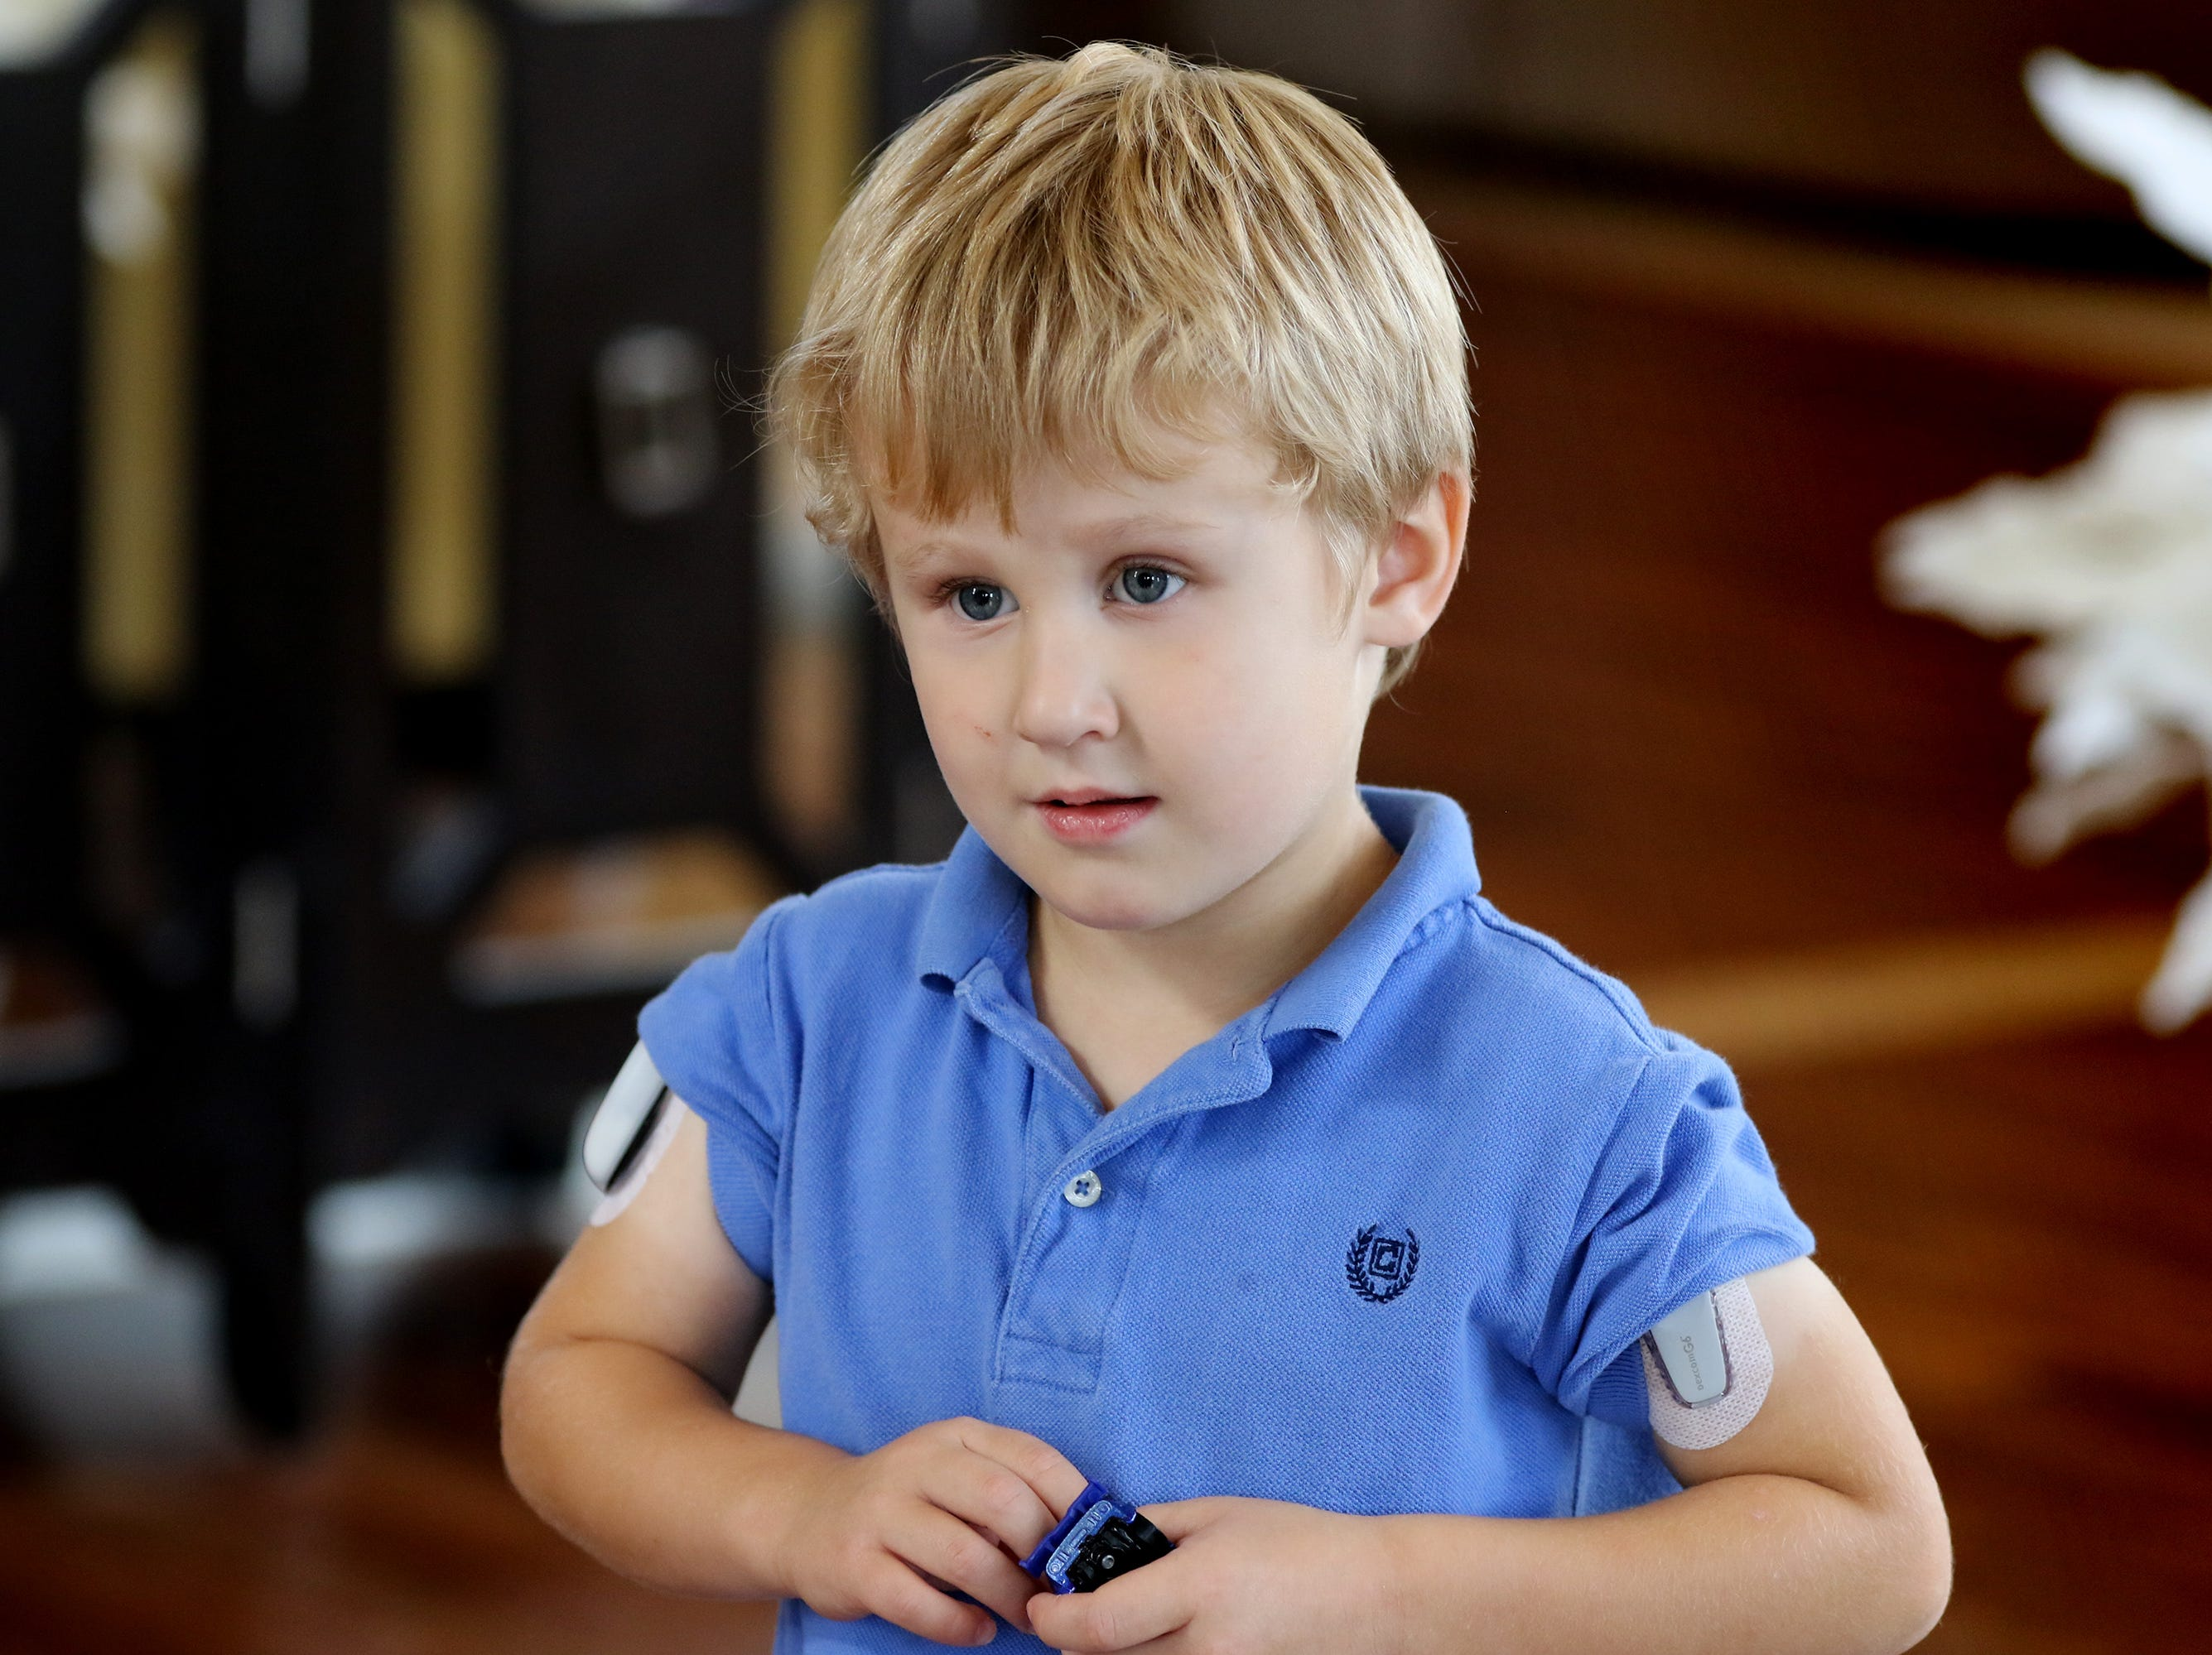 With an insulin pump on his right arm, and a continuous blood glucose monitor on his left arm, Carson Ford goes about his life as an energetic three-year-old with his family in Pewaukee living with Type 1 Diabetes.